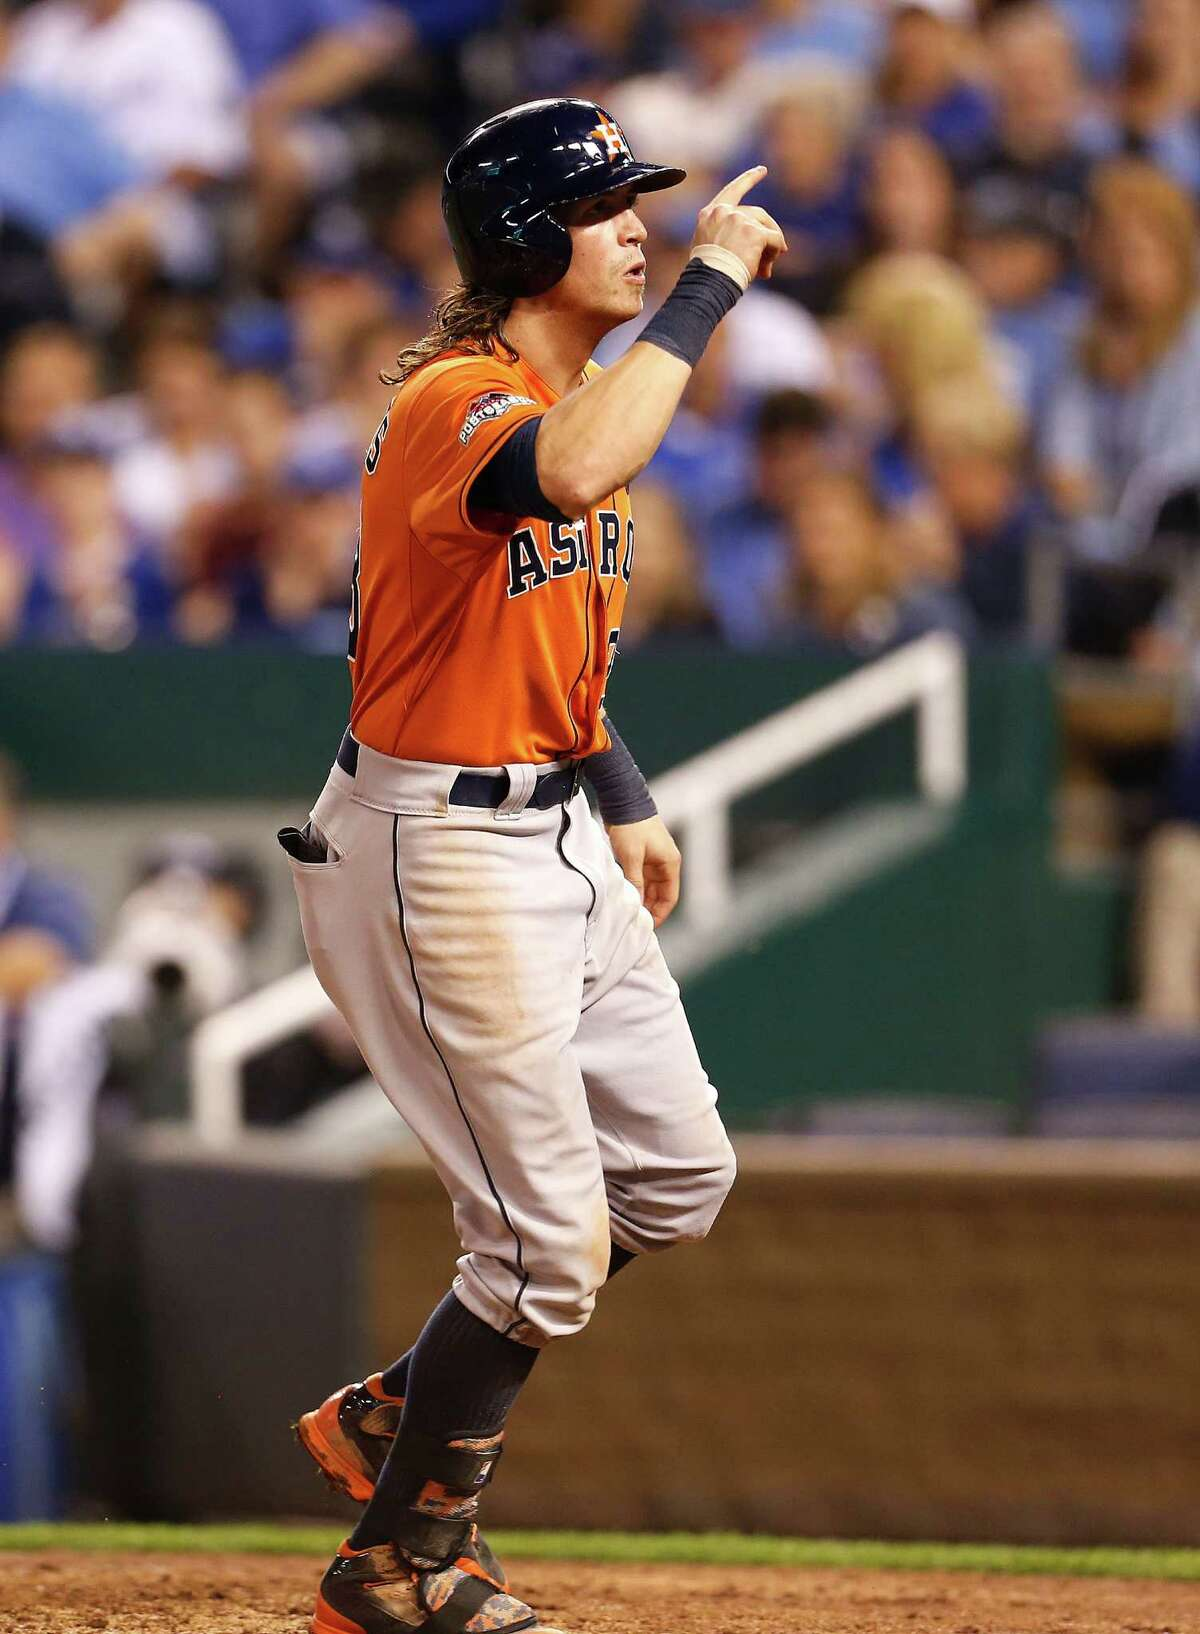 Houston Astros left fielder Colby Rasmus (28) celebrates after hitting a solo home run in the top of the eighth inning. Game 1 of the American League Division Series at Kauffman Stadium on Thursday, Oct. 8, 2015, in Kansas City. ( Karen Warren / Houston Chronicle )